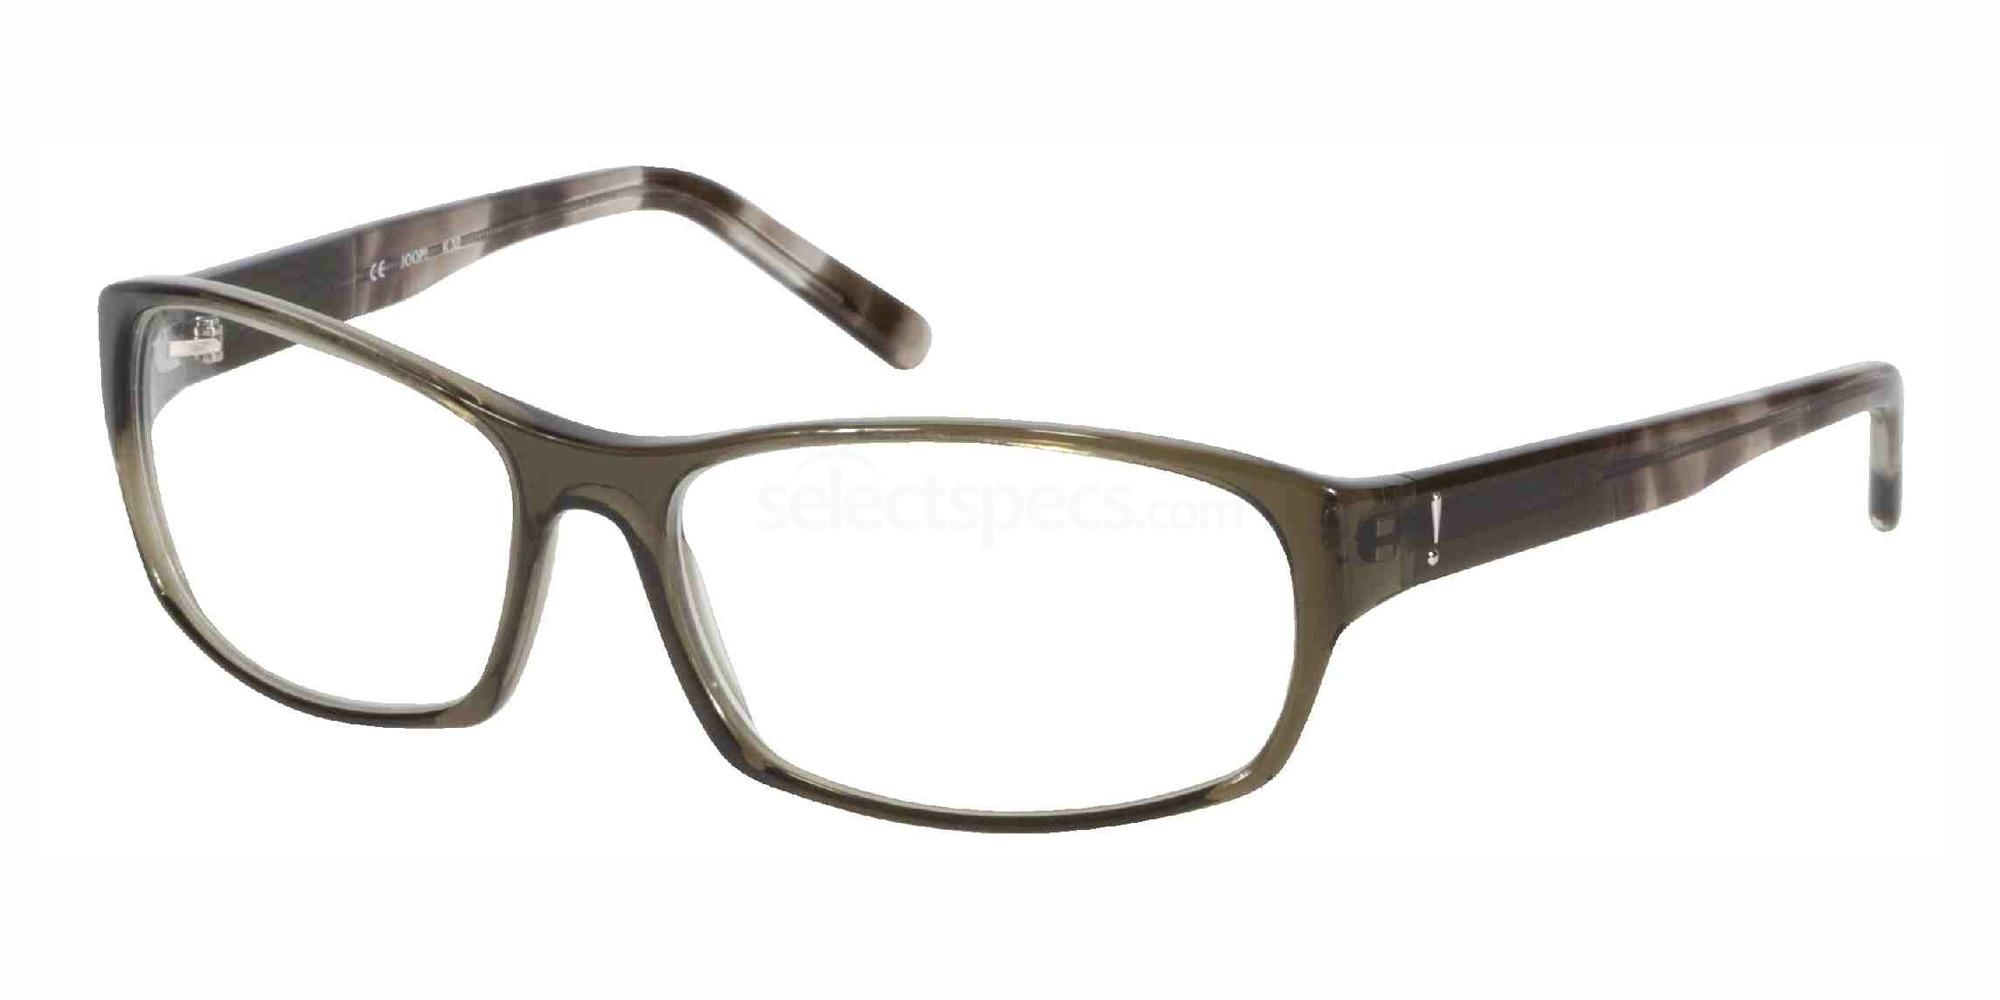 6286 81047 Glasses, JOOP Eyewear